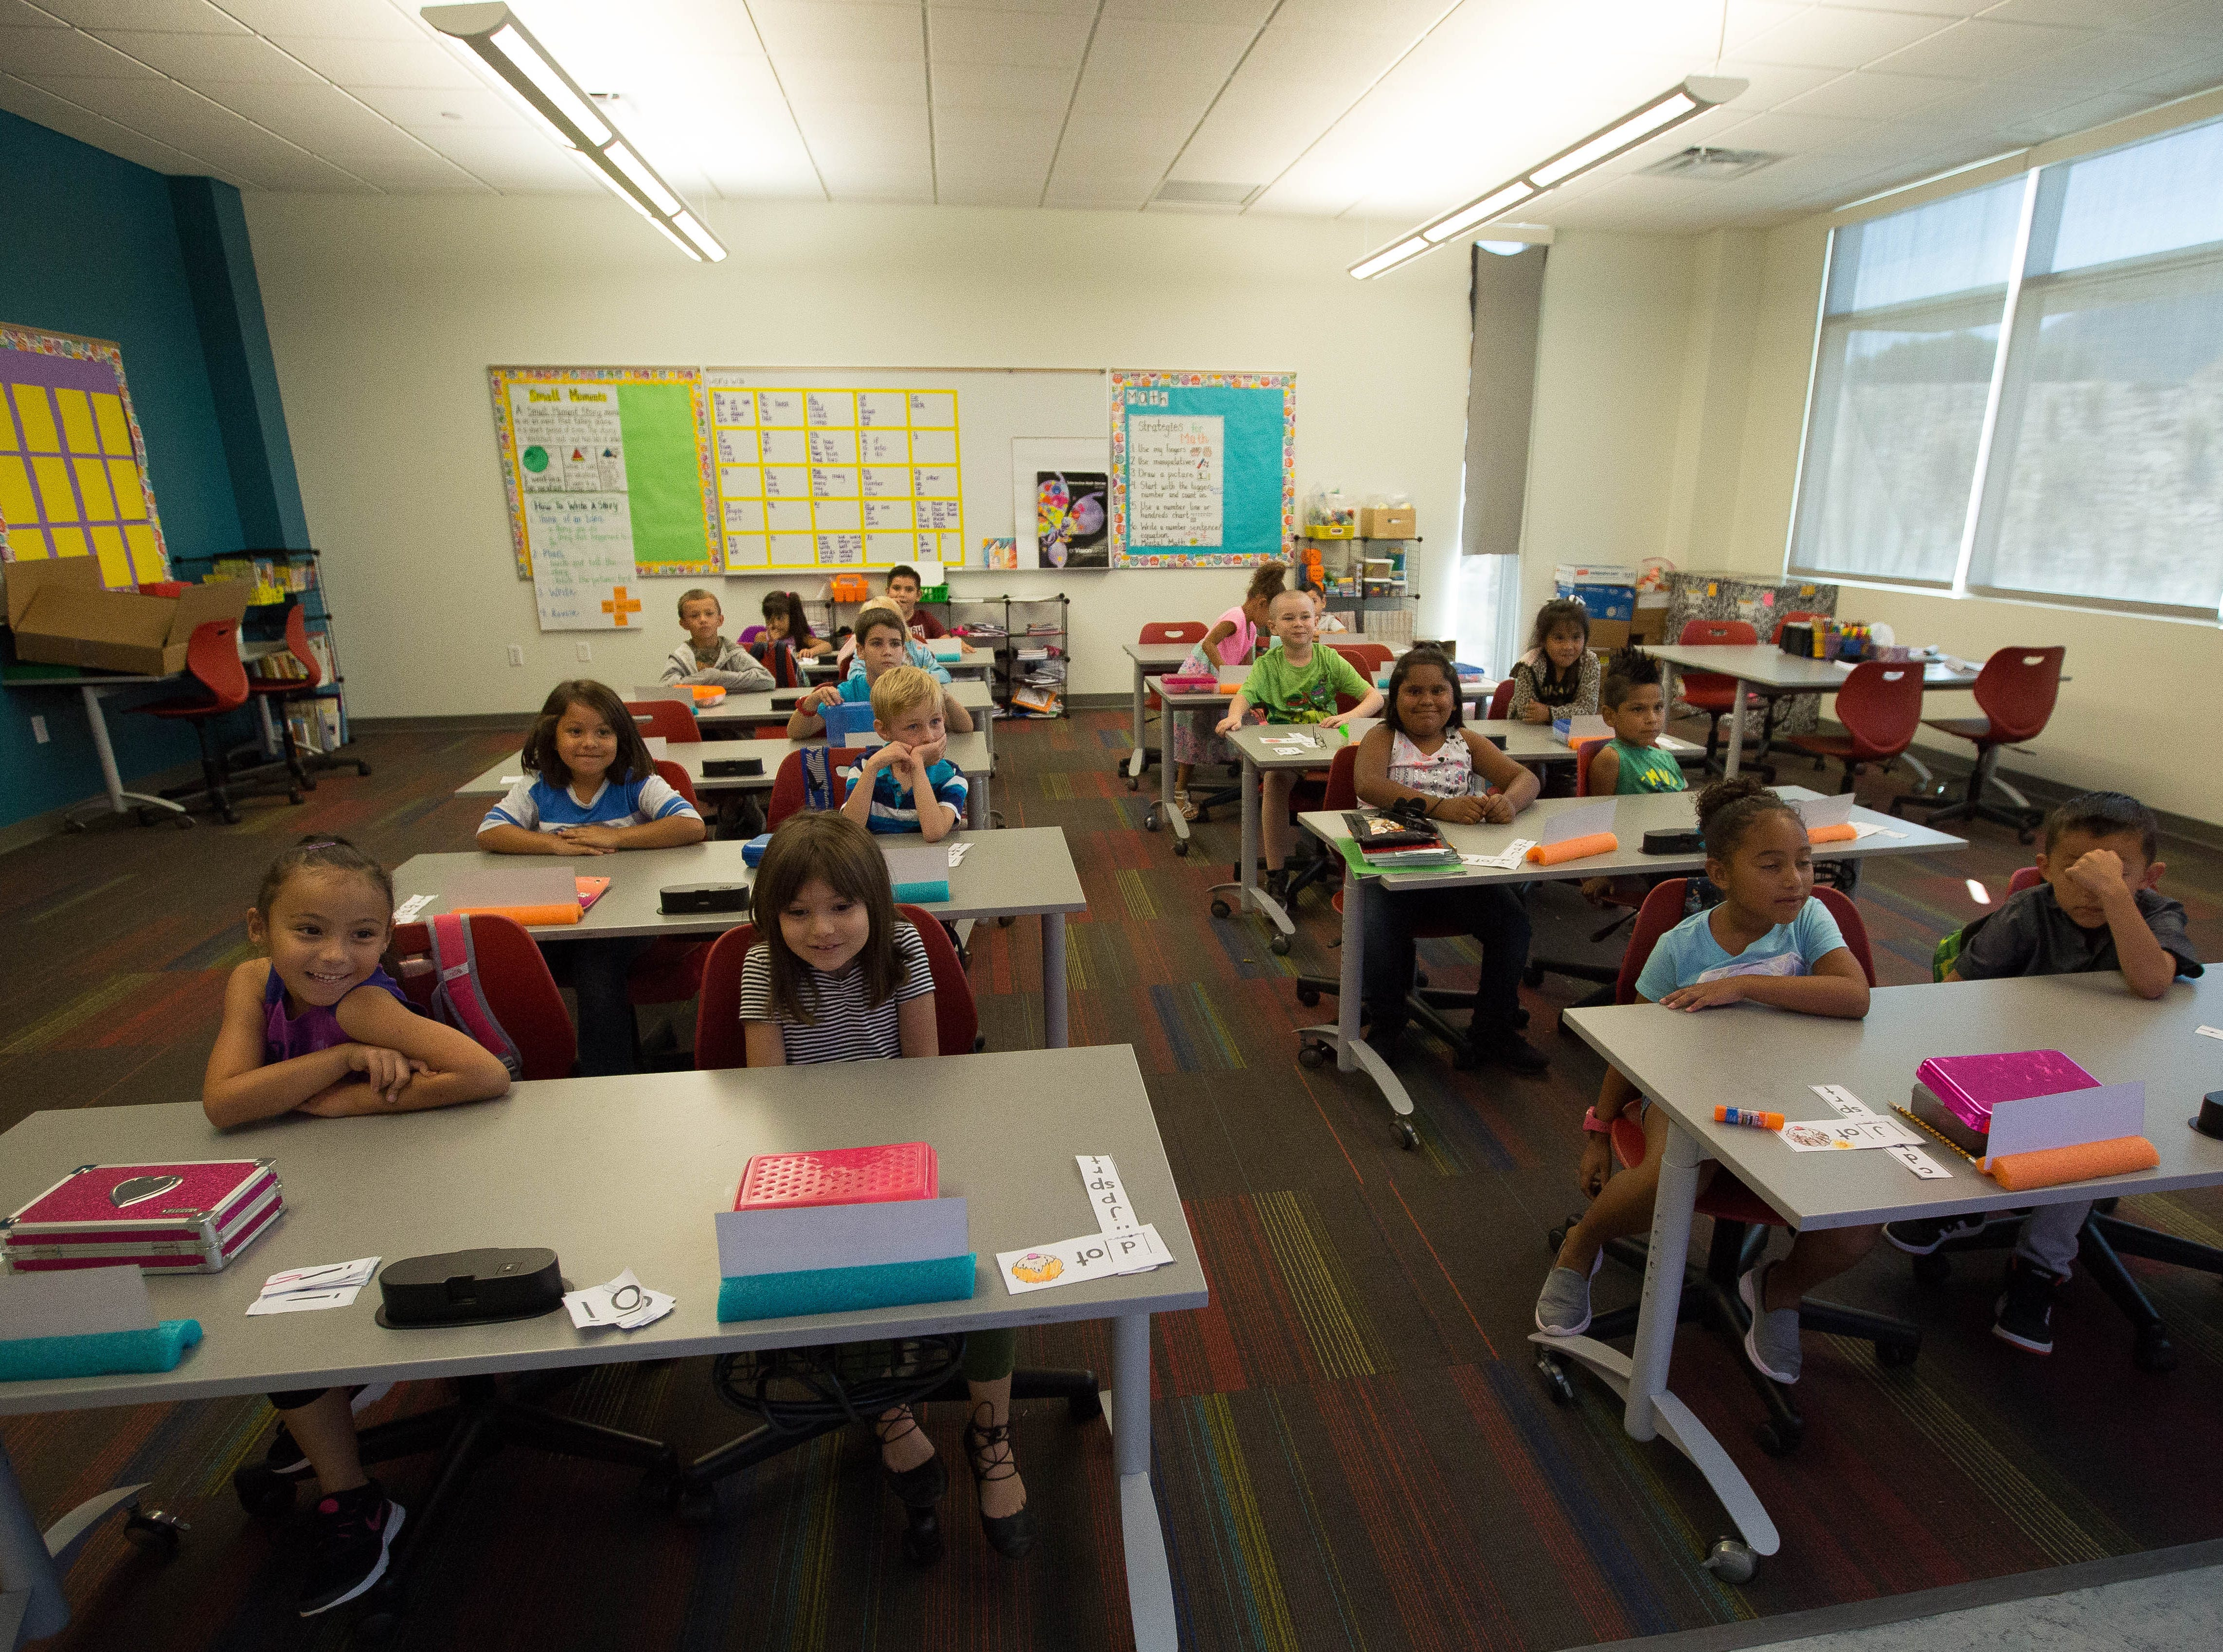 Melissa Madrid's first grade class from Columbia Elementary School watching a video during their school day Wednesday September 19, 2018 at Centennial High School.